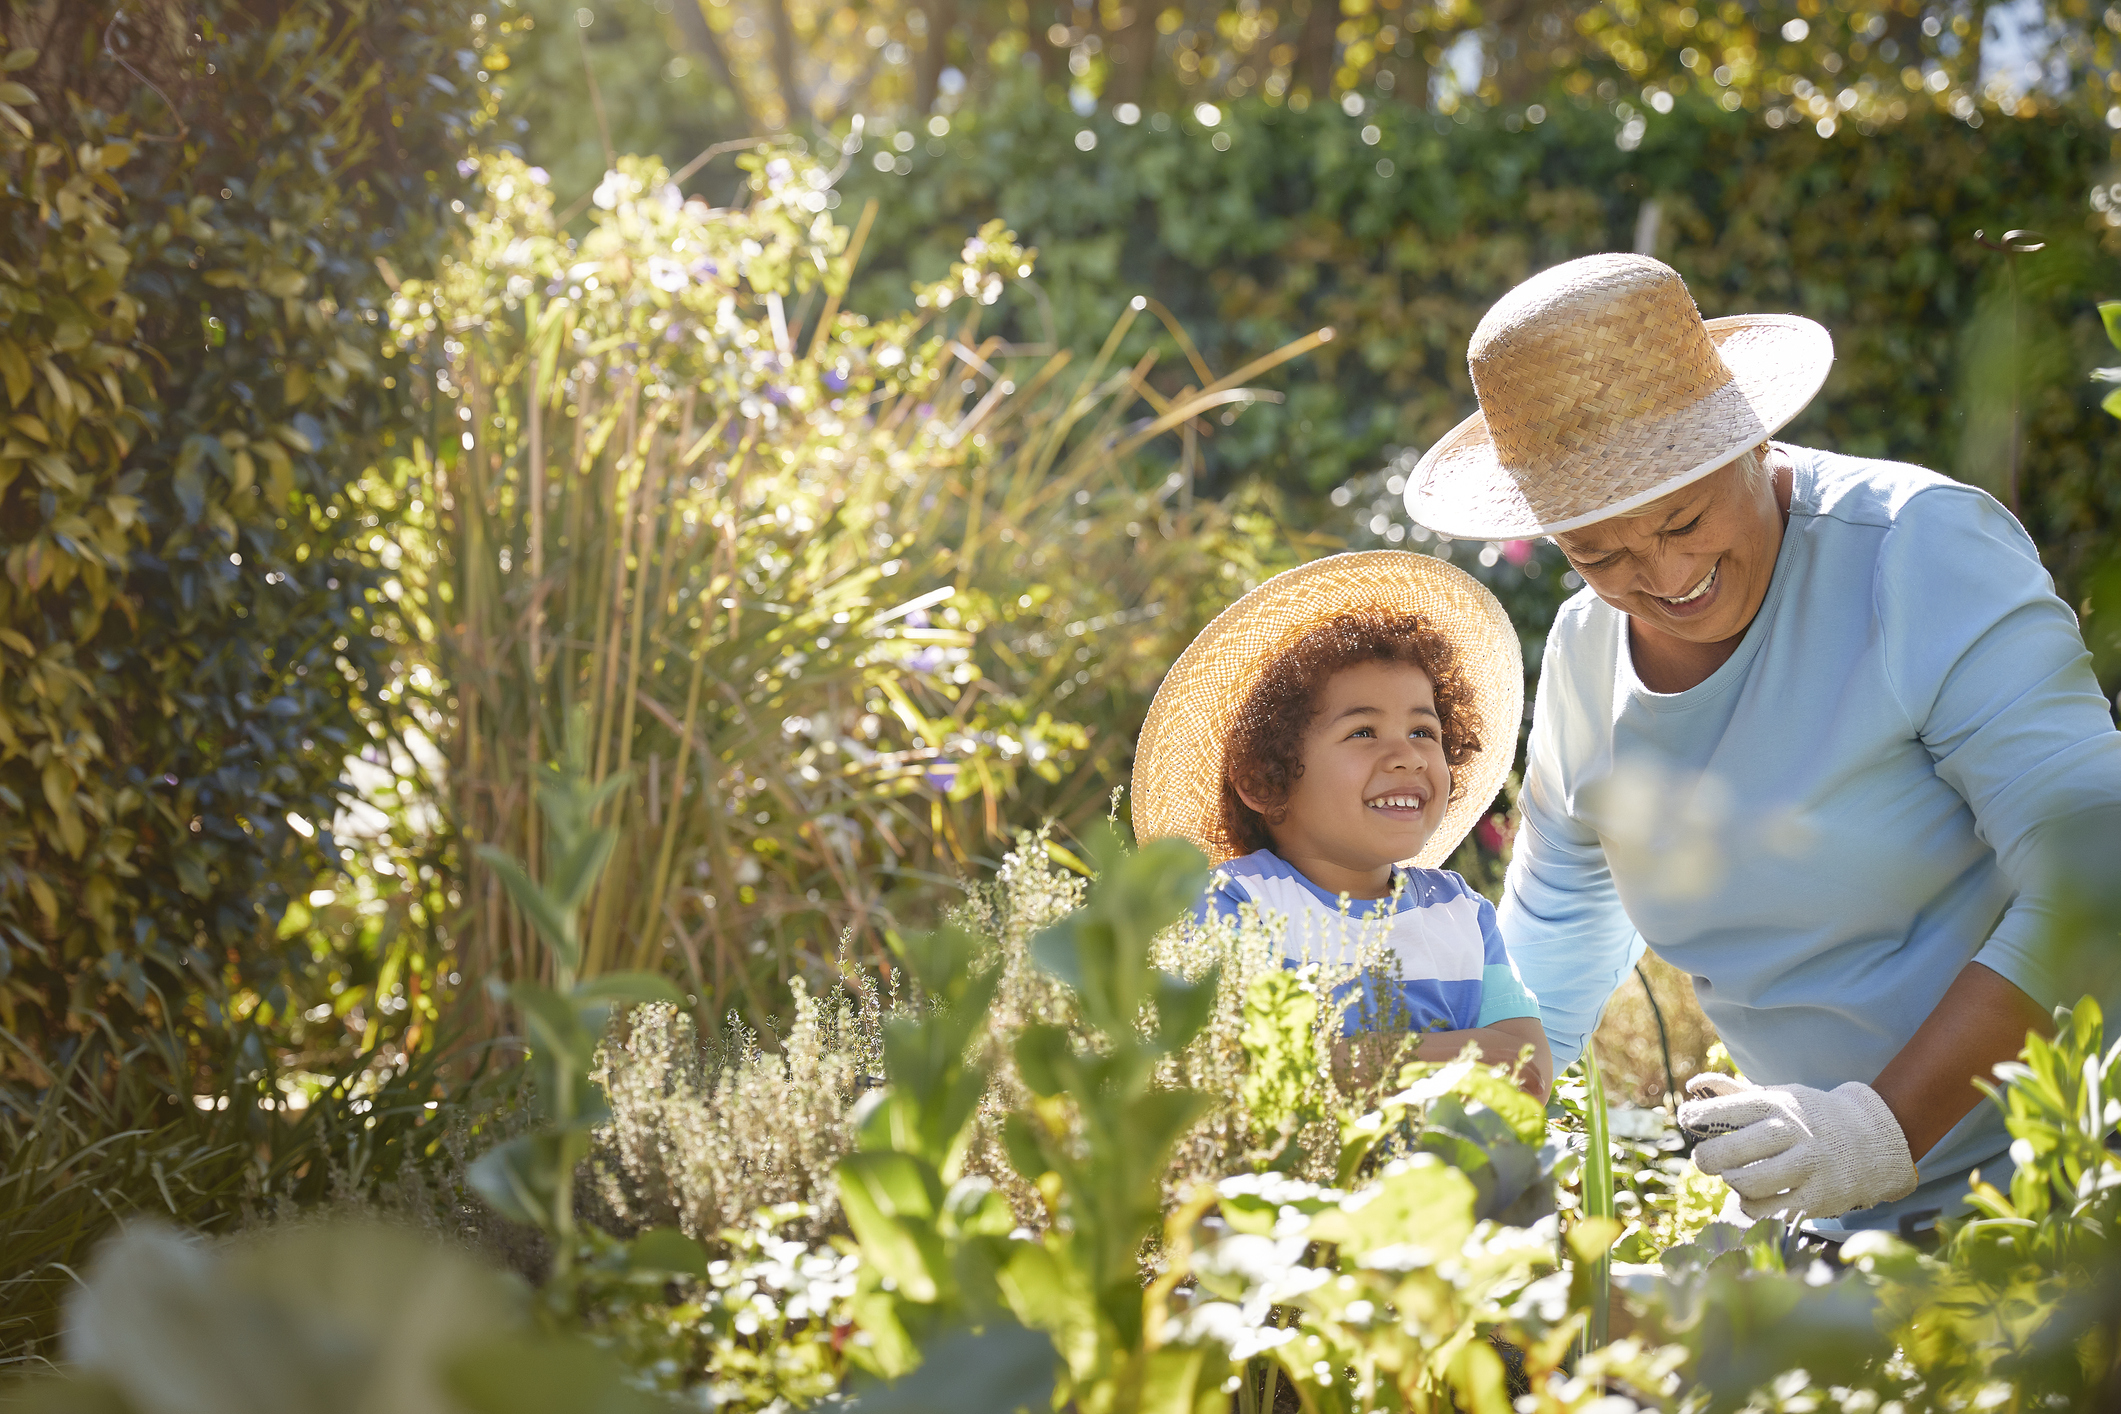 Grandmother and child gardening outdoors